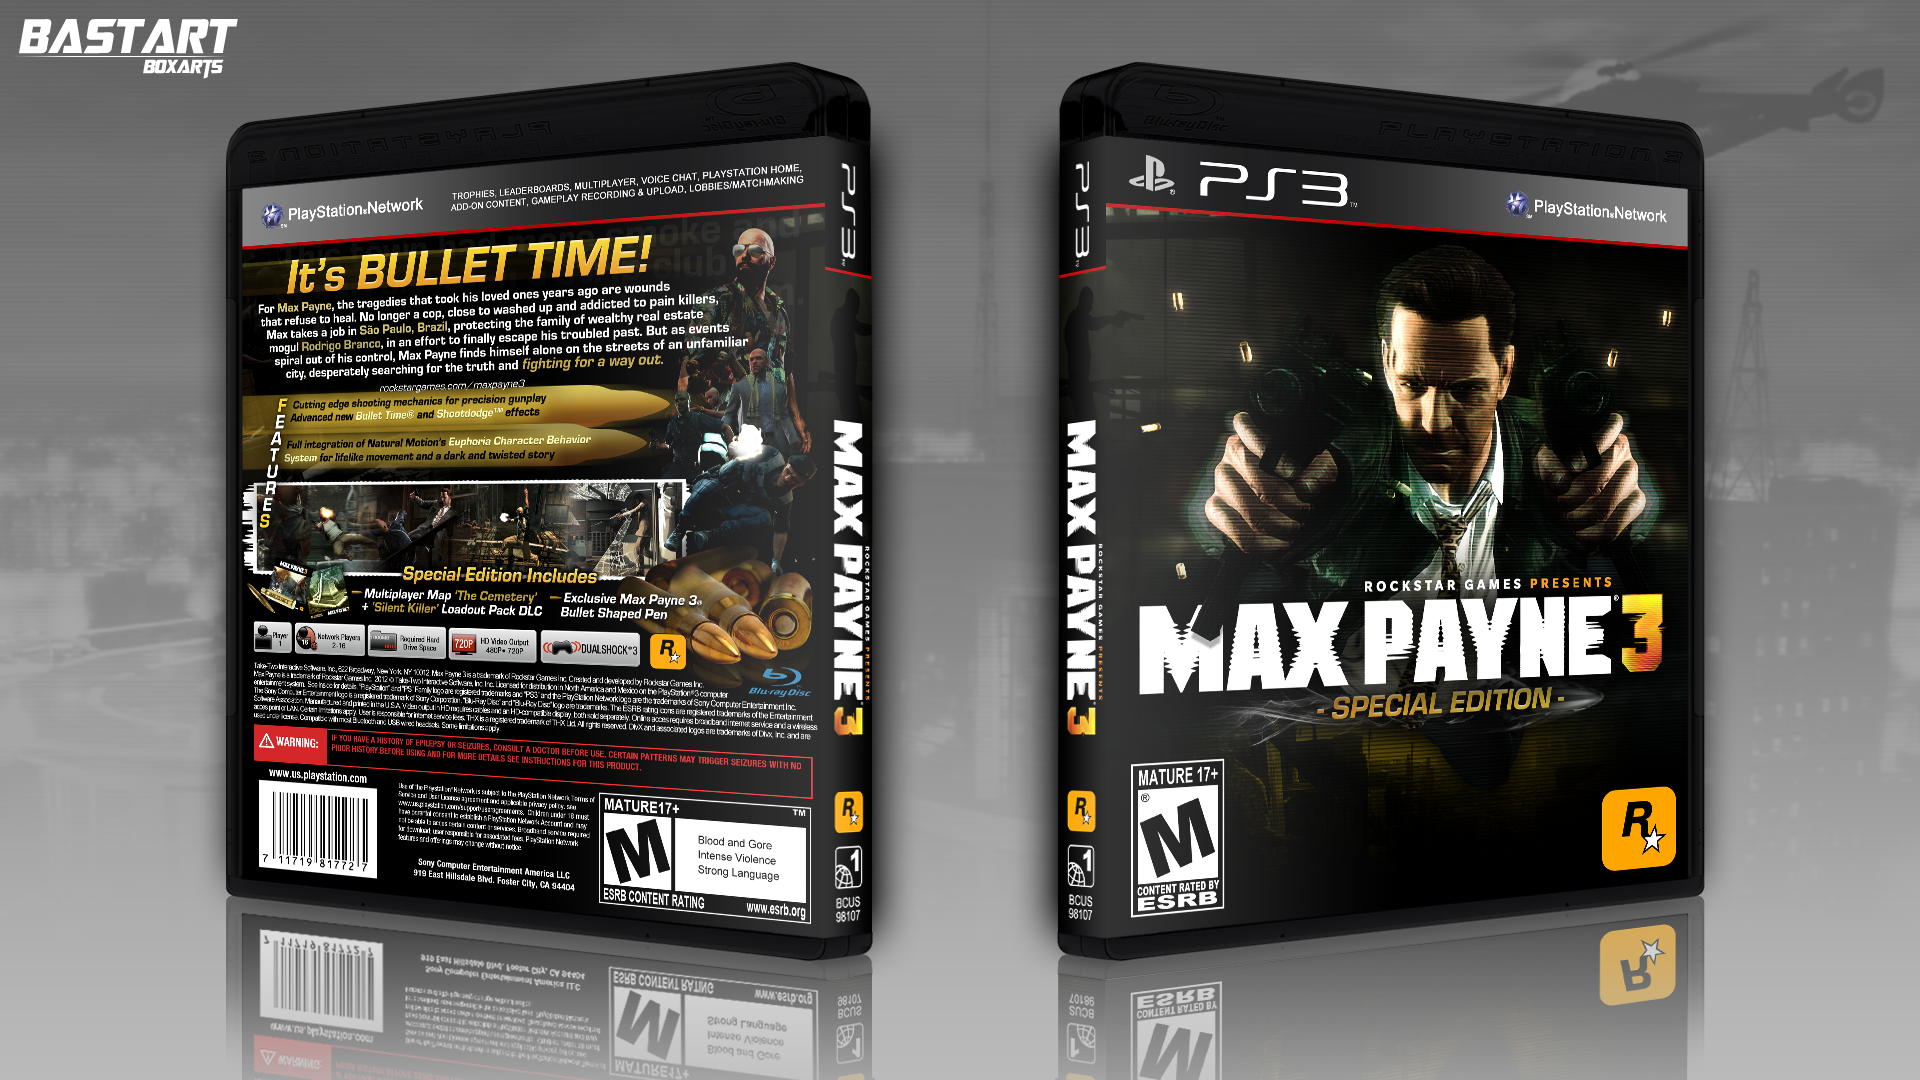 Viewing Full Size Max Payne 3 Special Edition Box Cover